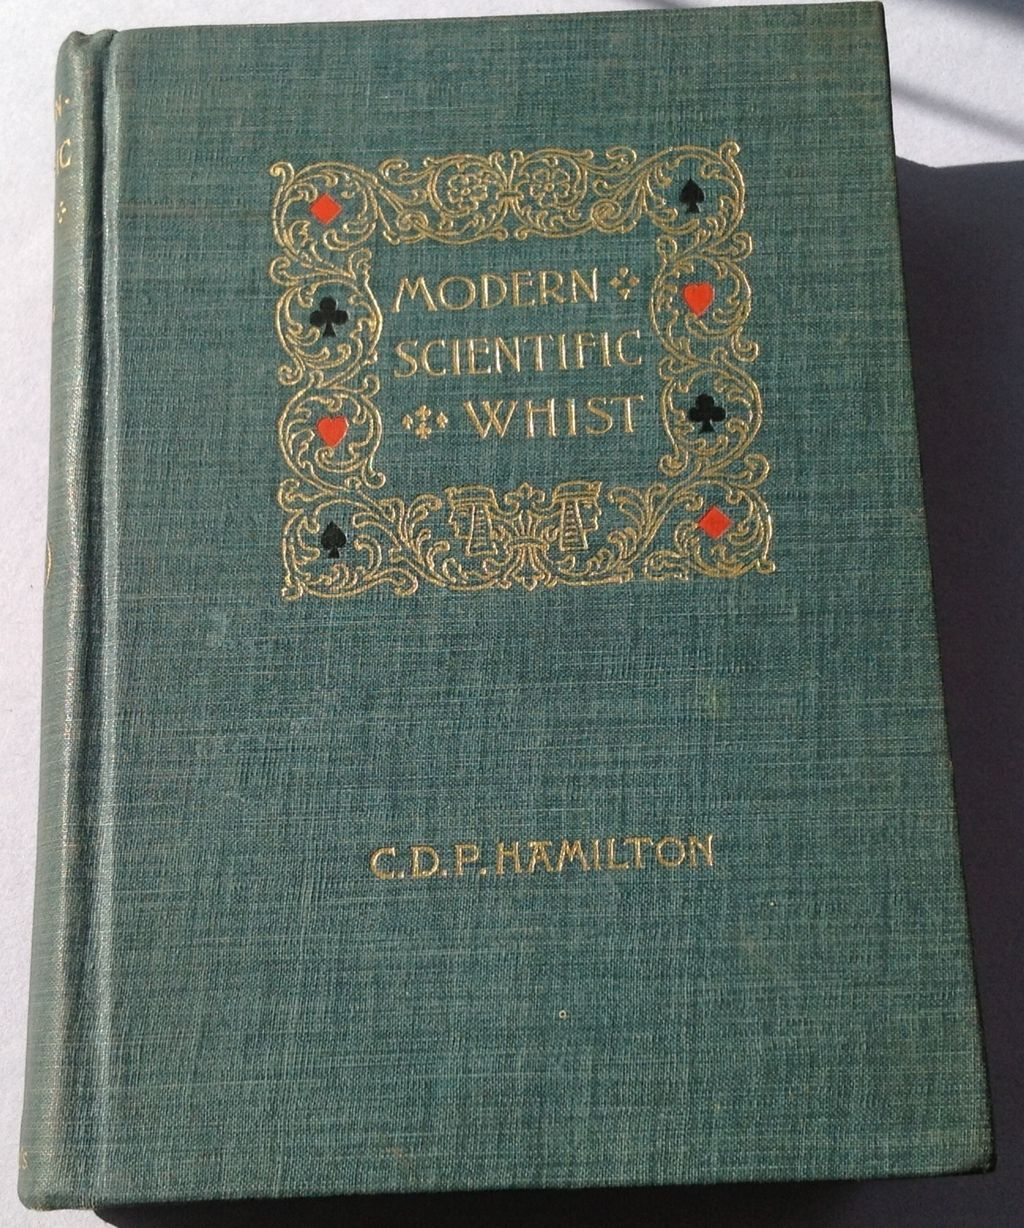 1894 Modern Scientific Whist By C. D. F. Hamilton